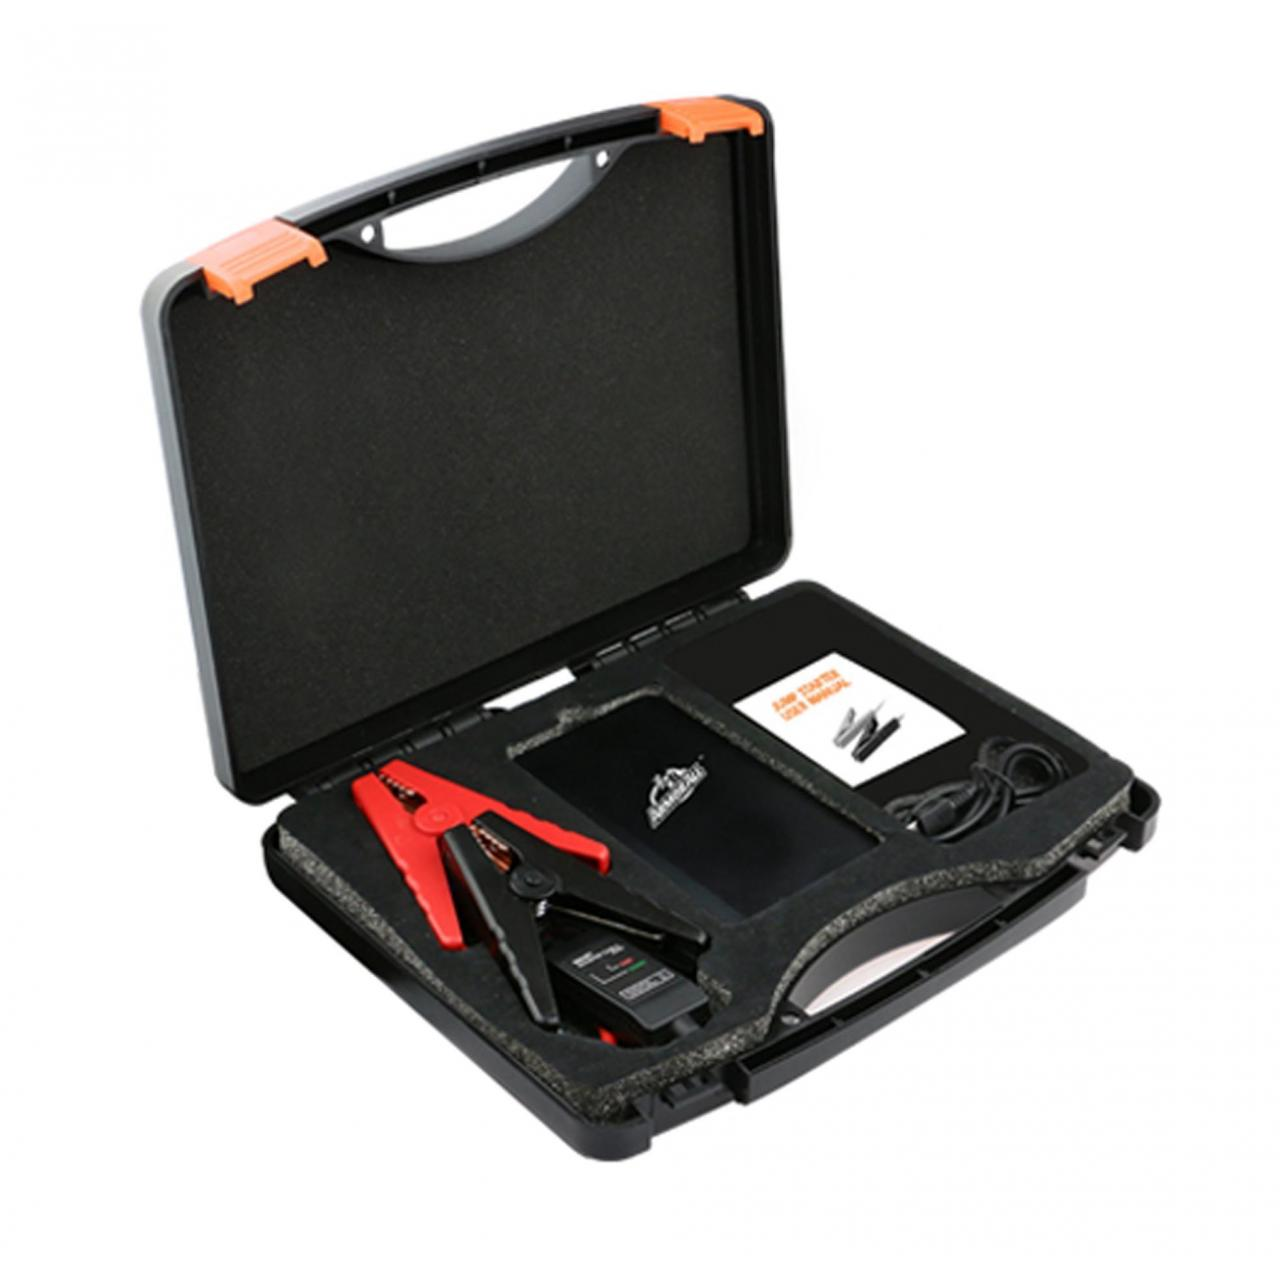 Car Organizers: 3-In-1 Emergency Jump Starter Not